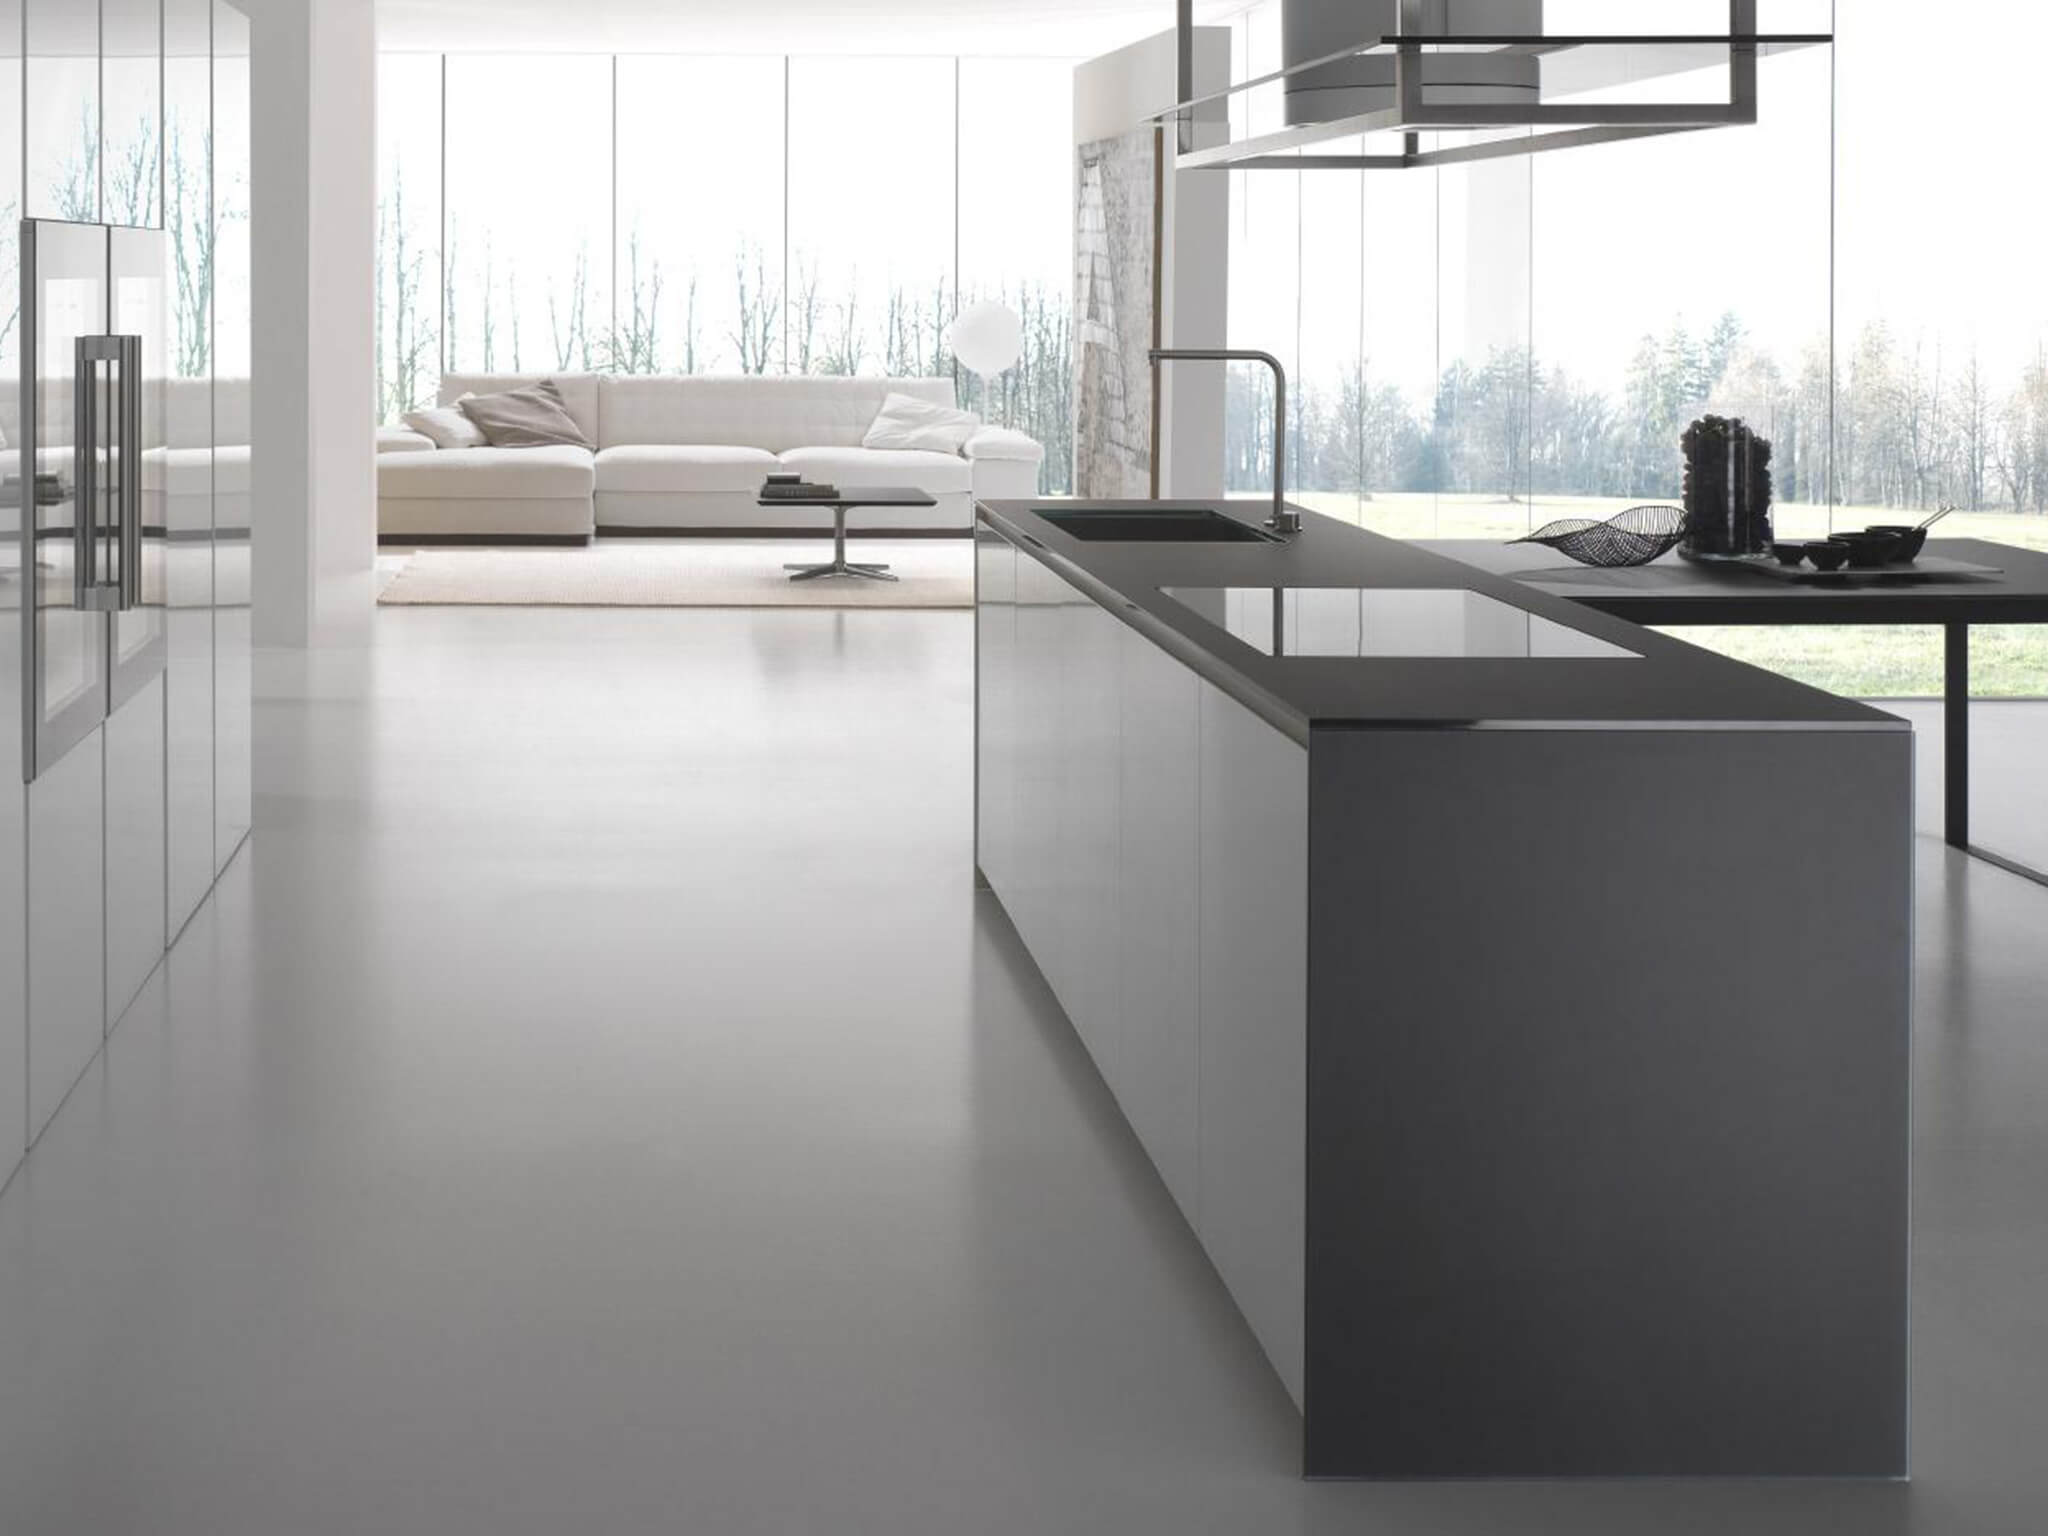 Twenty contemporary kitchen cabinet Modulnova Archisesto Chicago